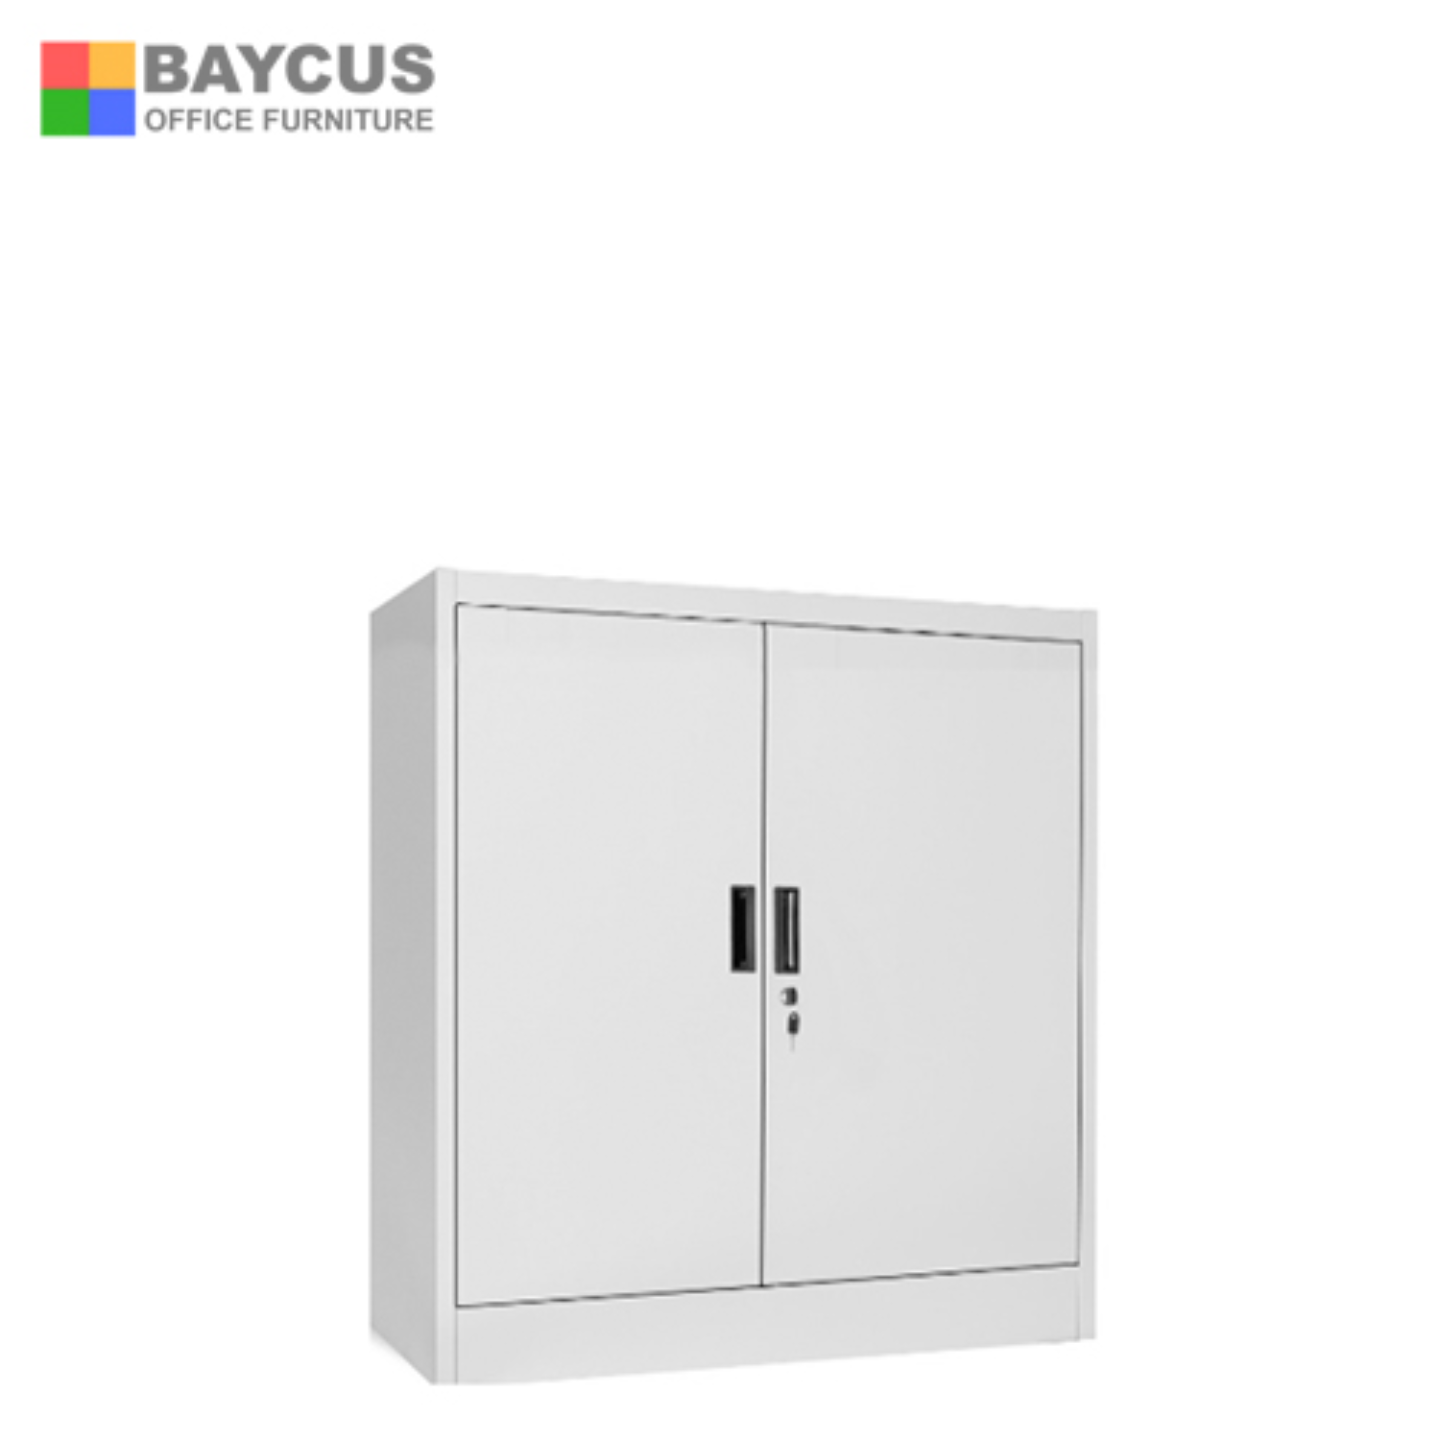 UW-09 Half Height Swing Door Metal Cabinet